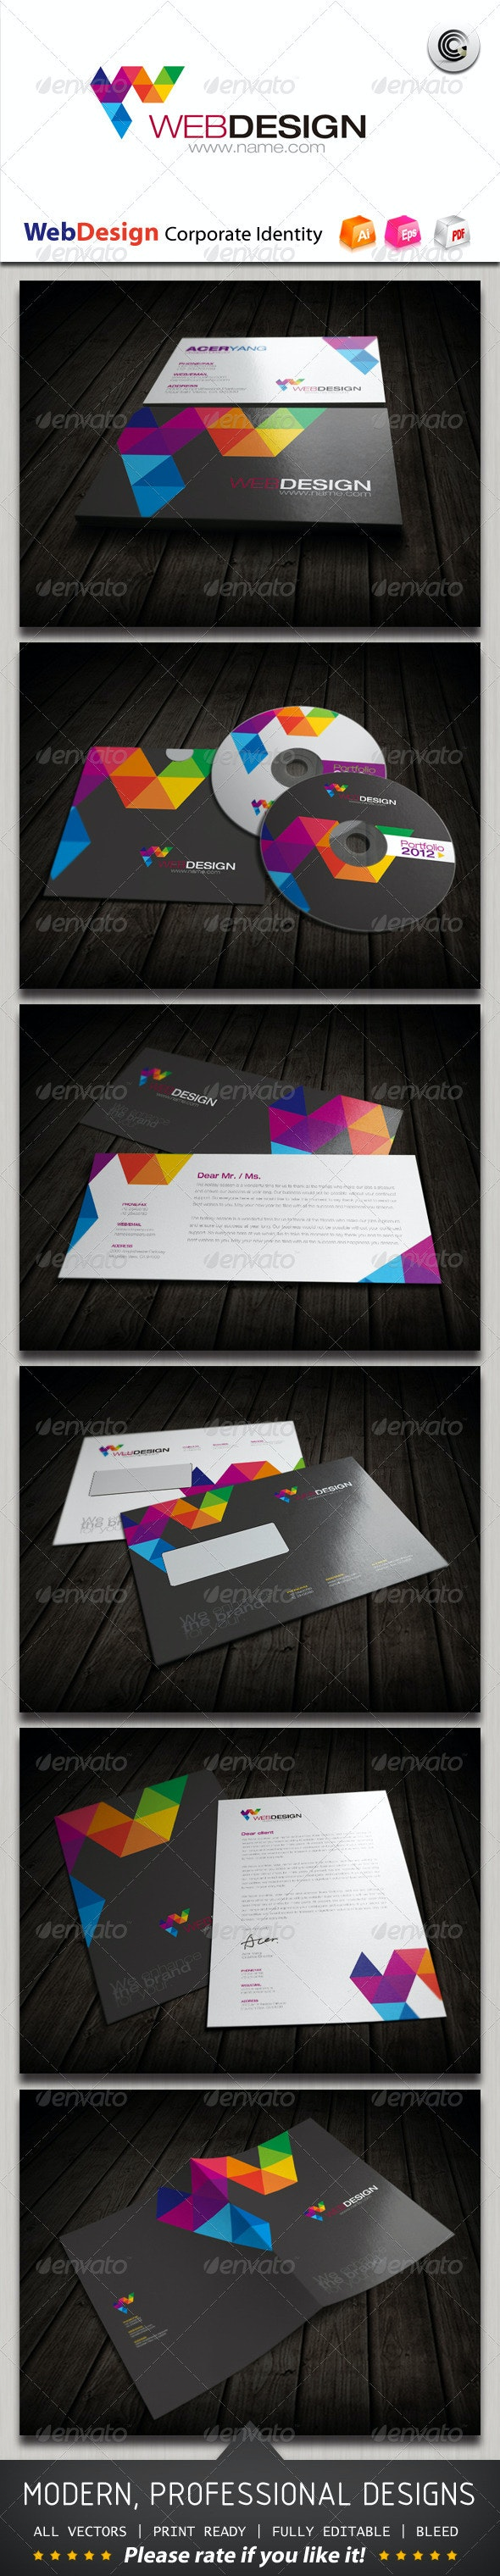 Web Design Corporate Identity - Stationery Print Templates